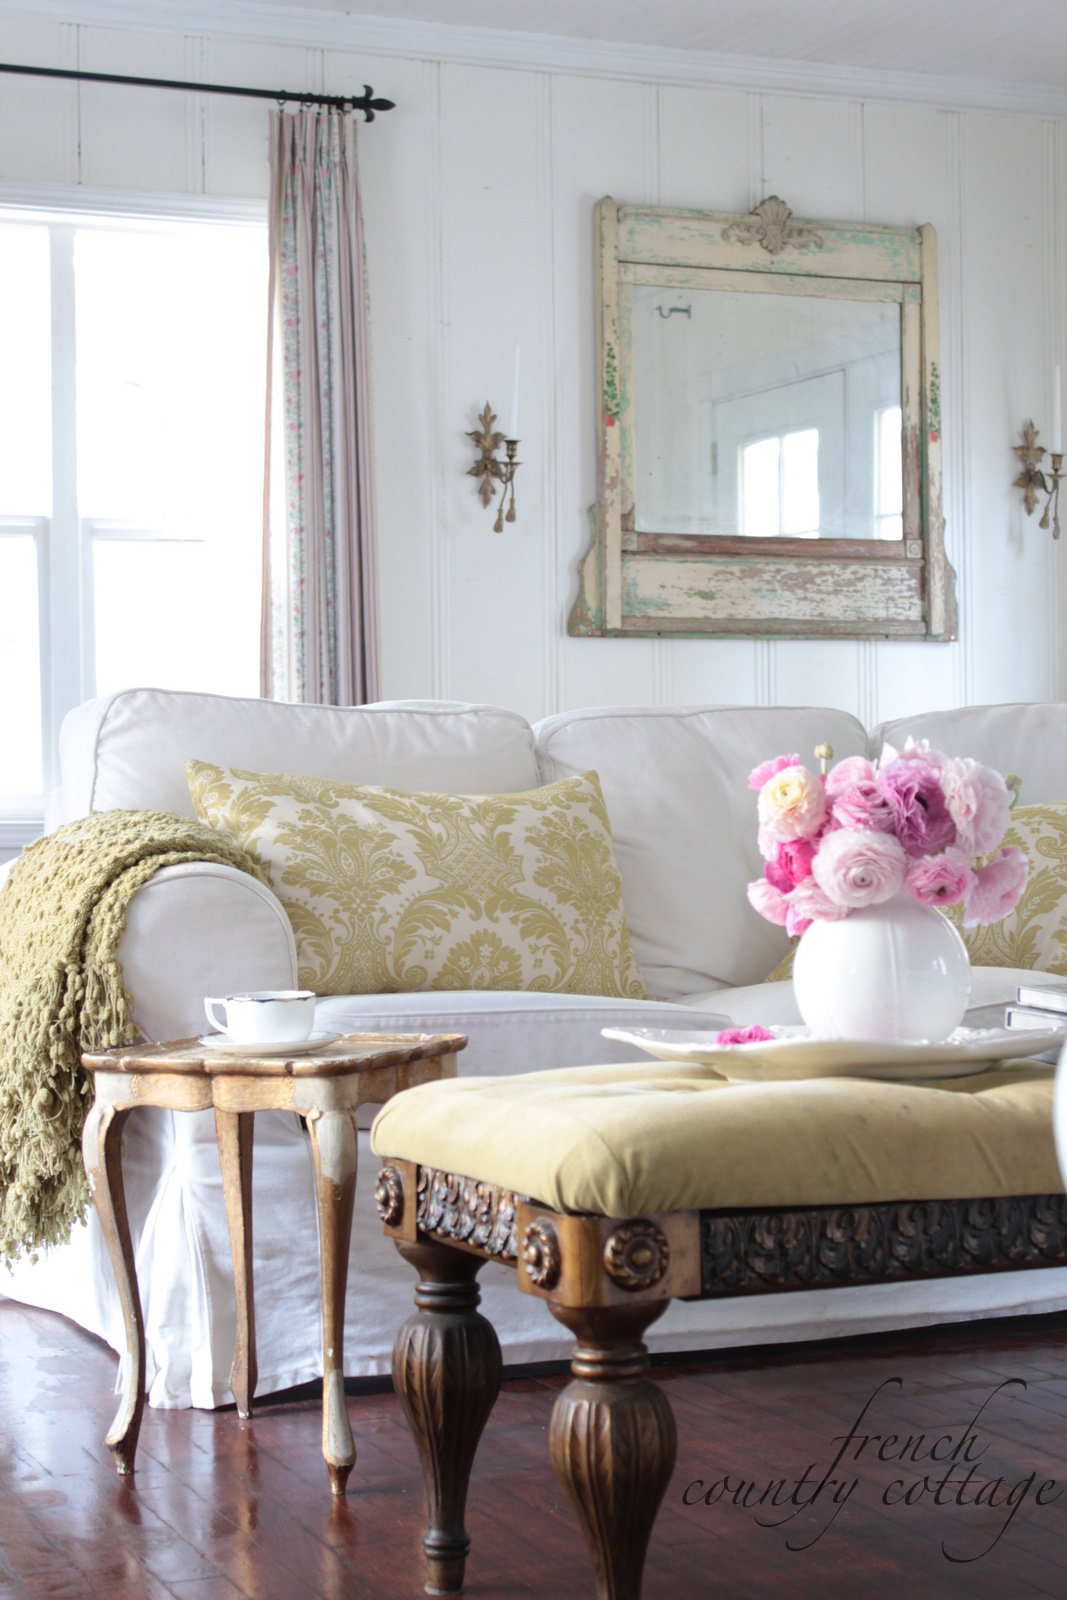 Decorating with dried flowers  FRENCH COUNTRY COTTAGE